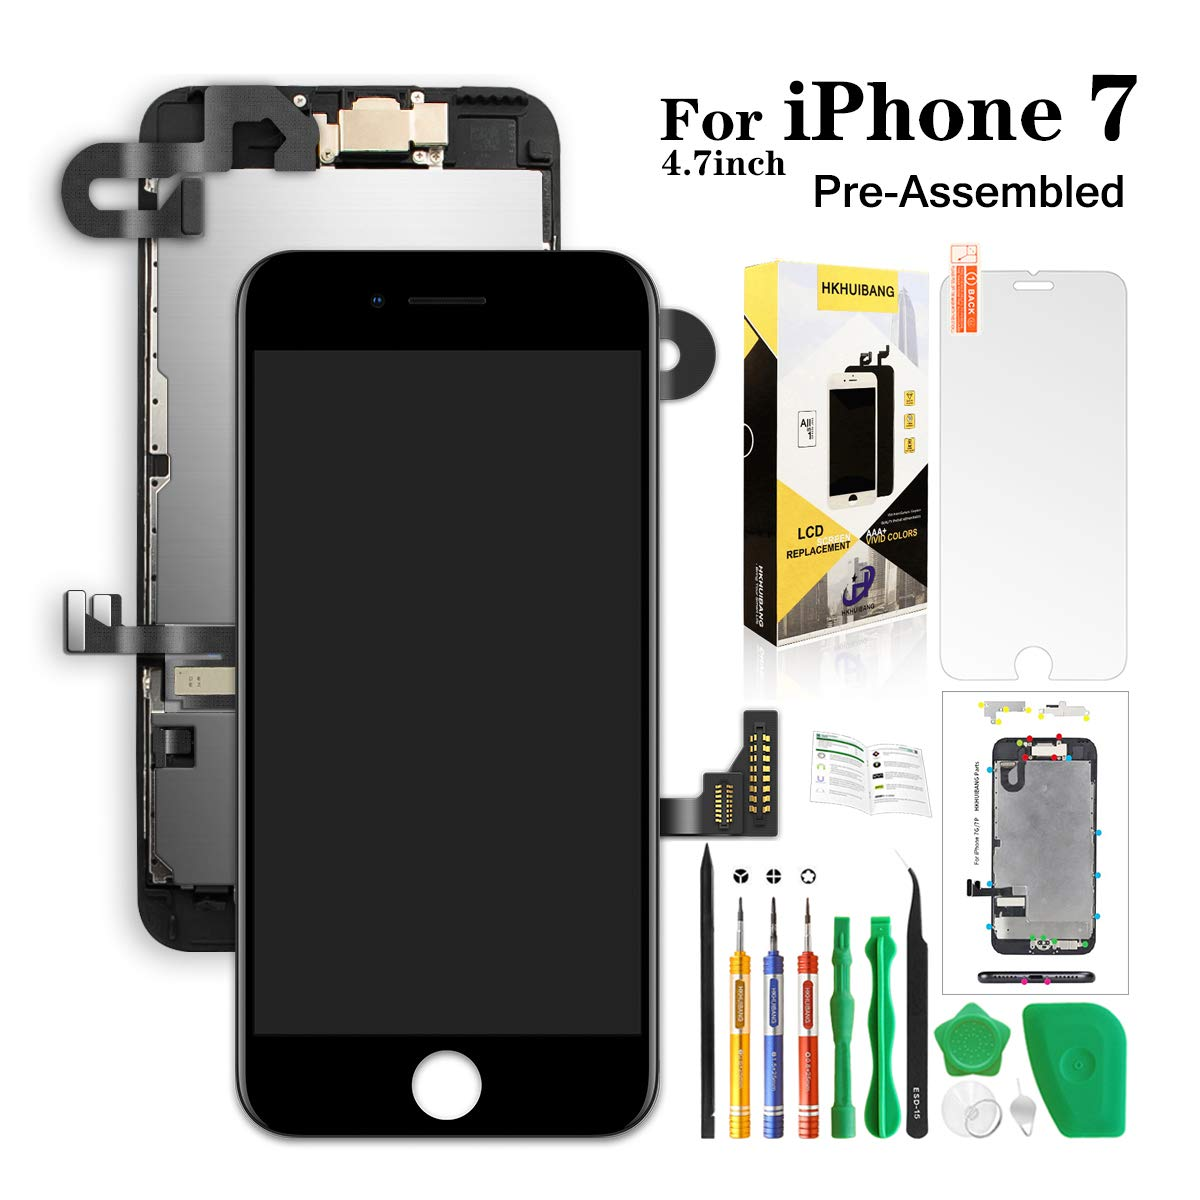 Compatiable iPhone Replacement Hkhuibang Digitizer